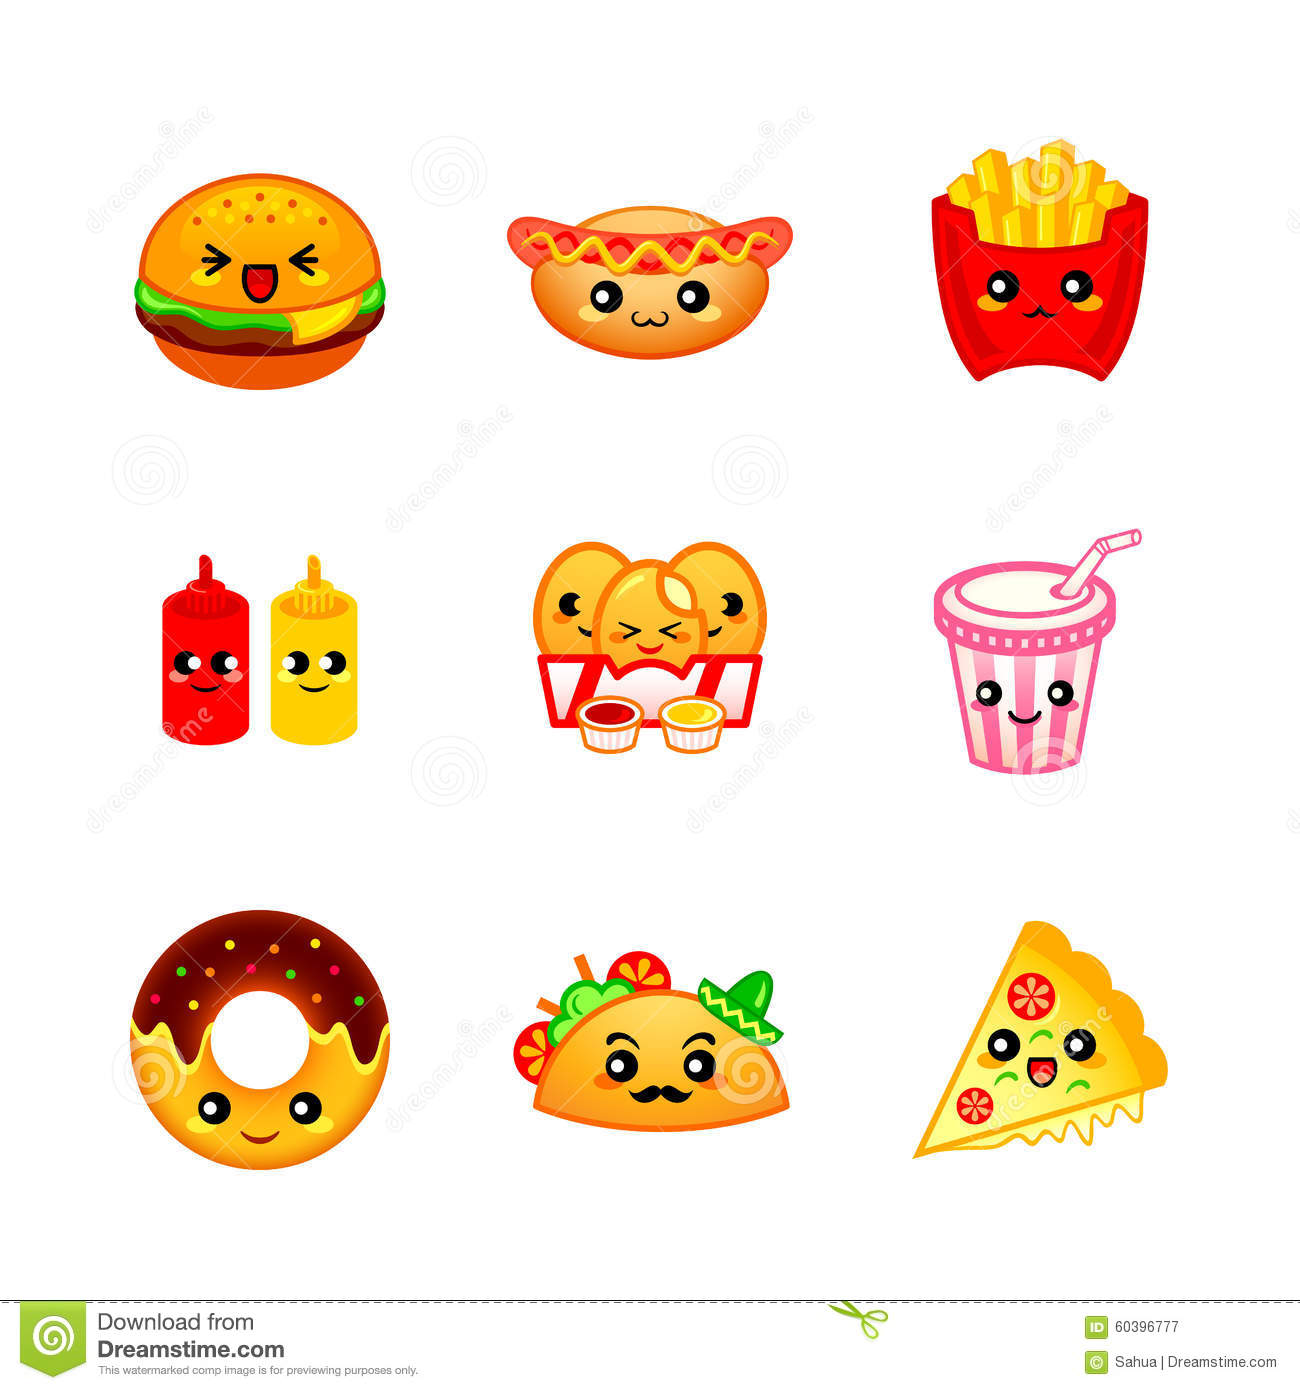 Cute Chicken Nugget Wallpaper Cute Fast Food Icons Stock Vector Image 60396777